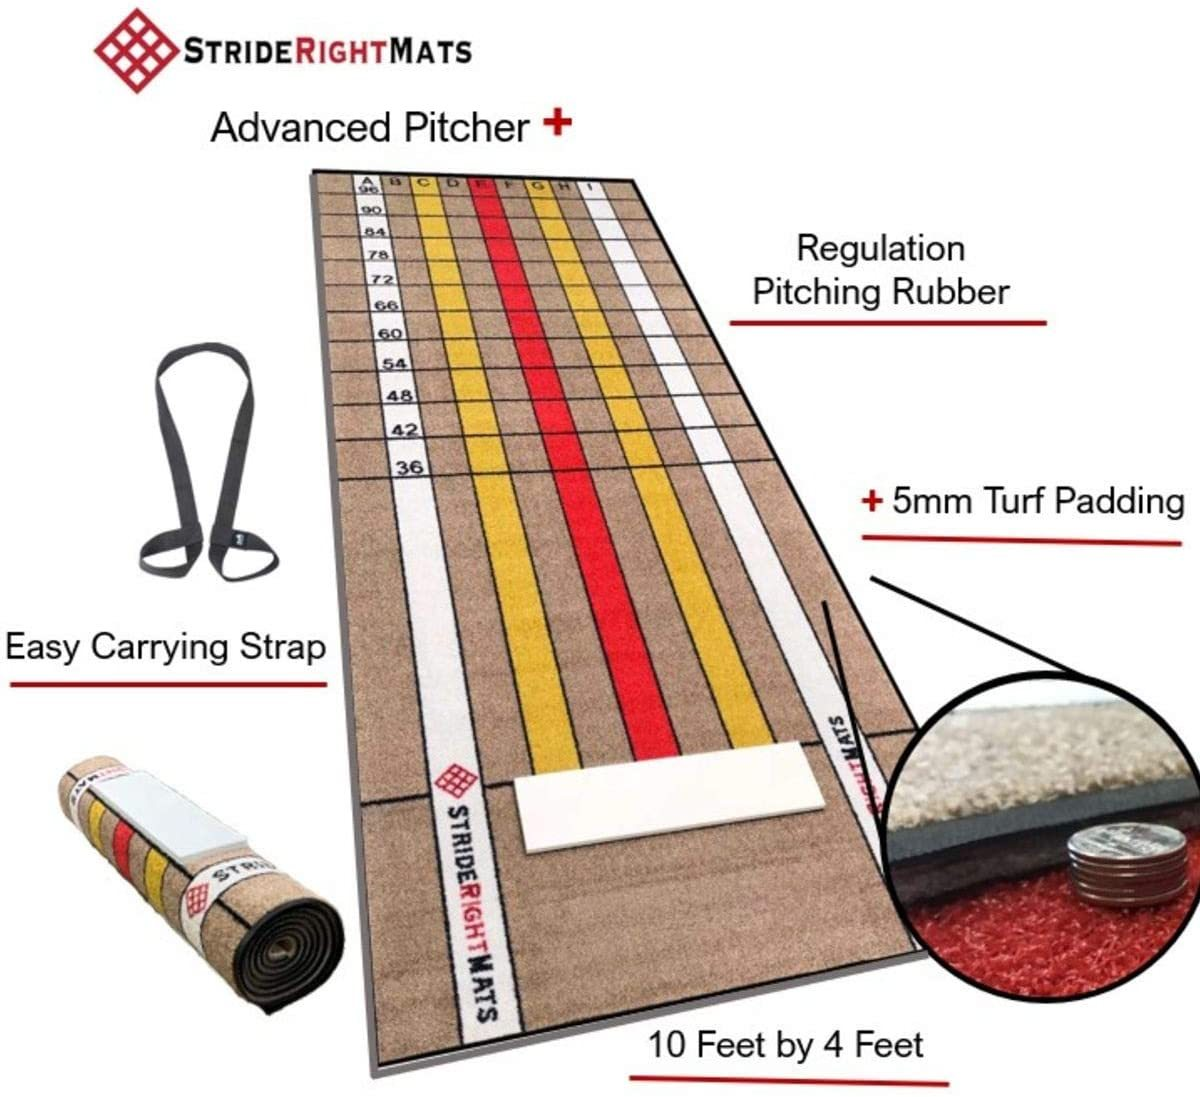 Baseball/Softball Dual Purpose Instructional Pitching Mat | Mound Overlay Stance & Stride Throwing Trainer with Power Lanes & Pitching Rubber | Stride Right Mats: Advanced Pitcher